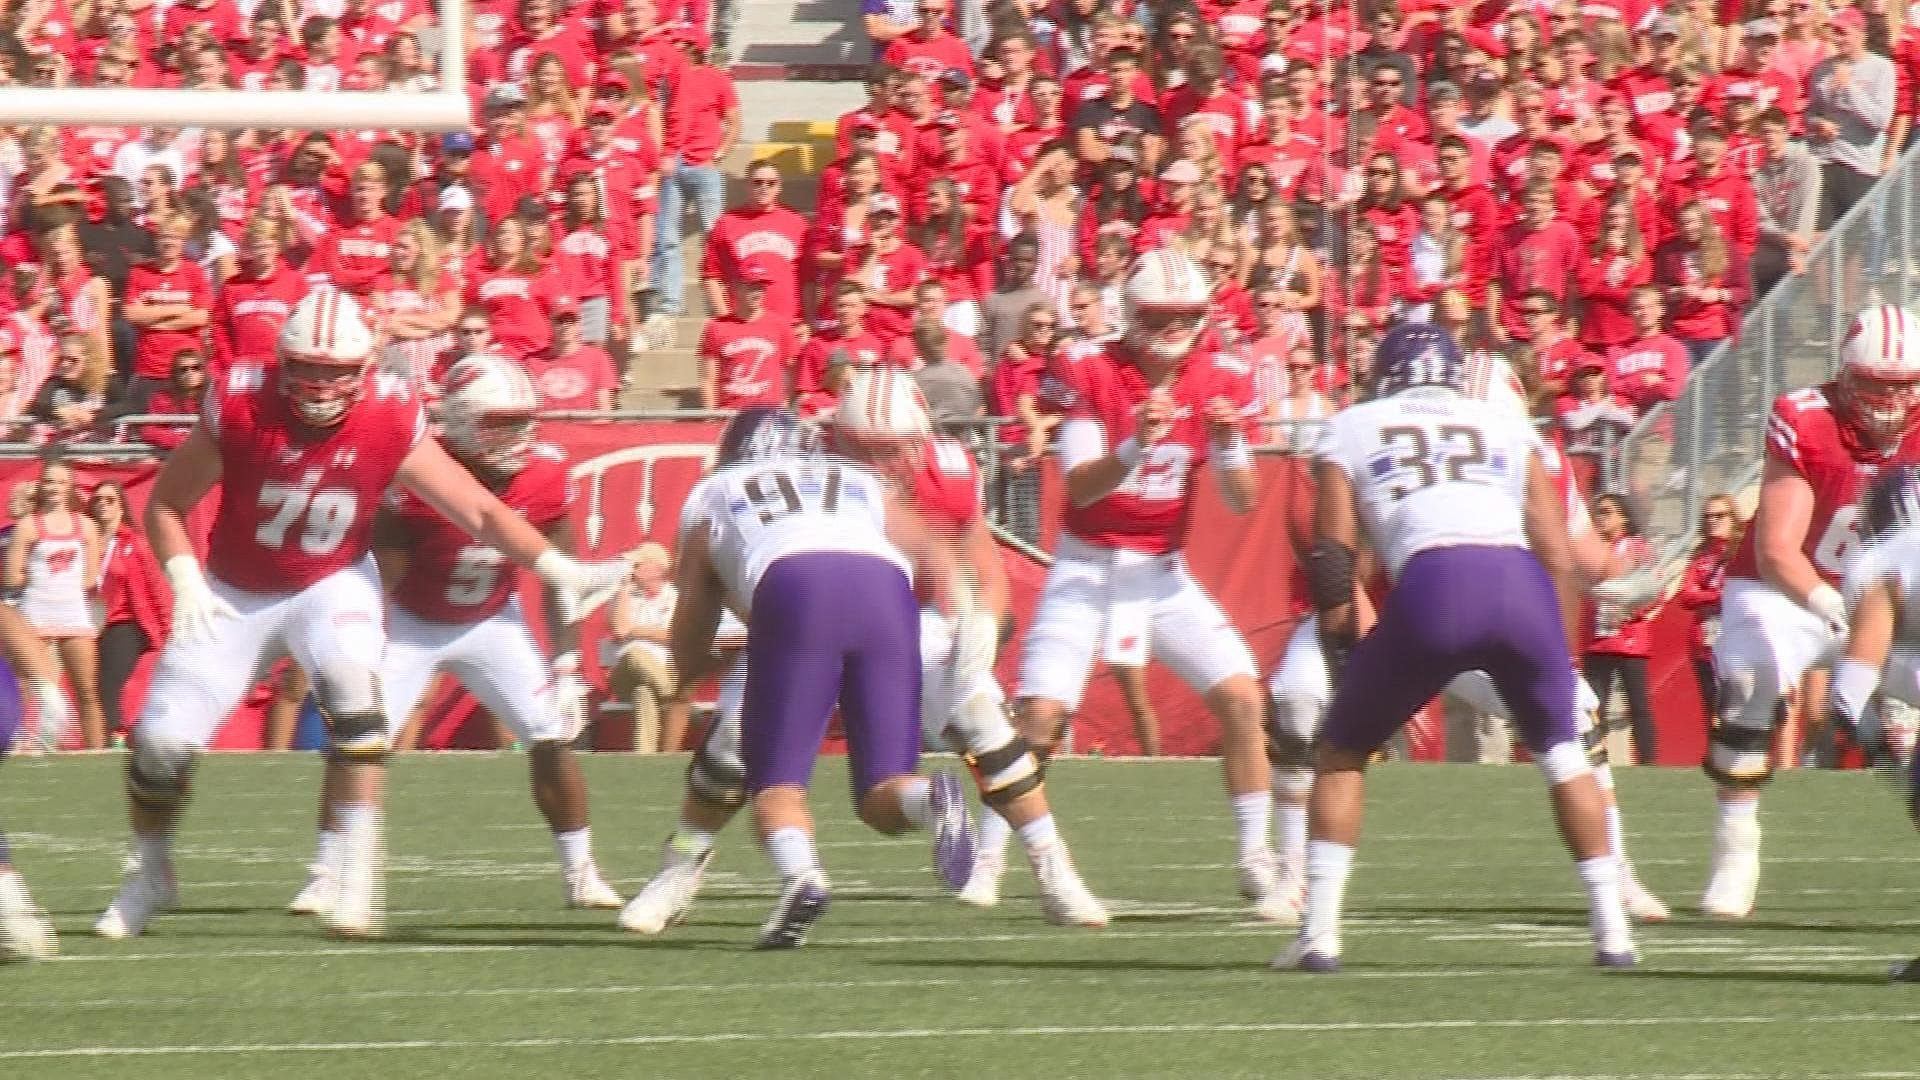 Badgers playing Northwestern at Camp Randall Sept. 30, 2017.